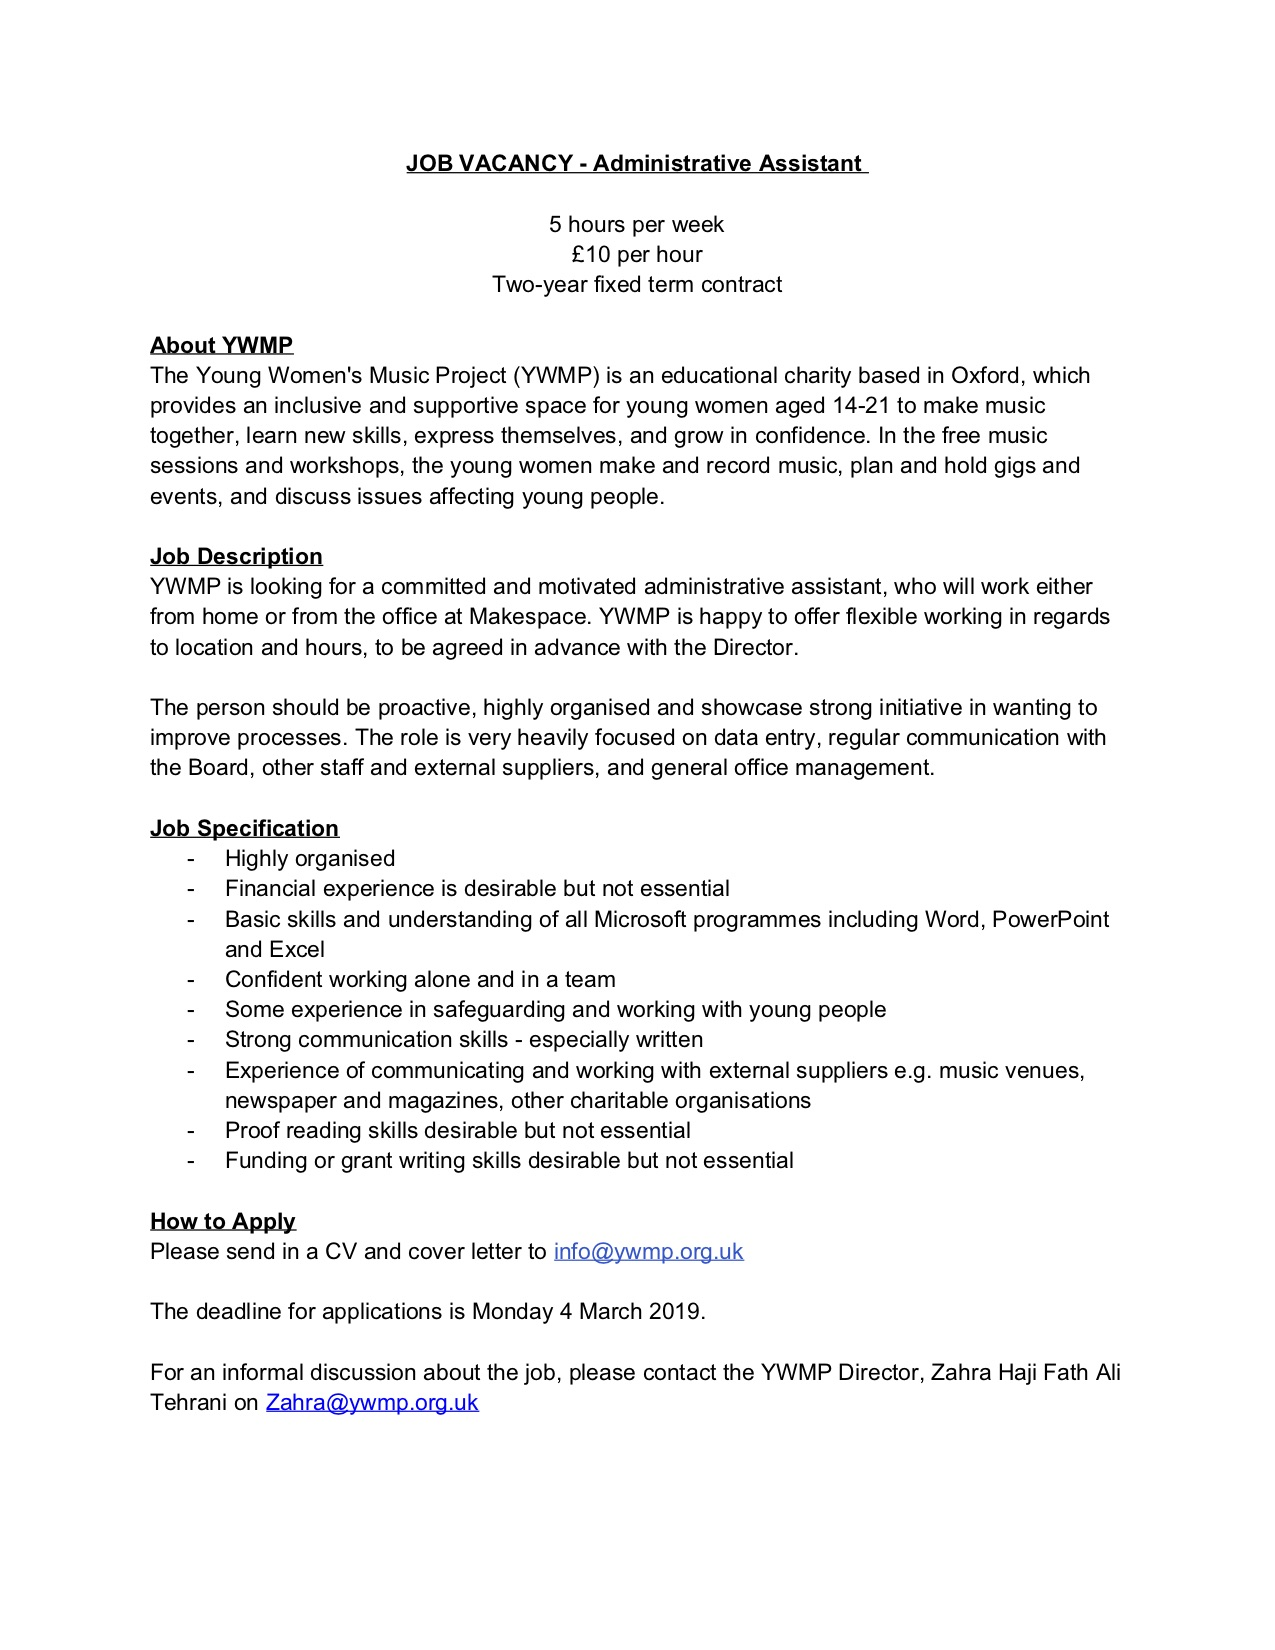 YWMP JOB VACANCY - Administrative Assistant.jpg